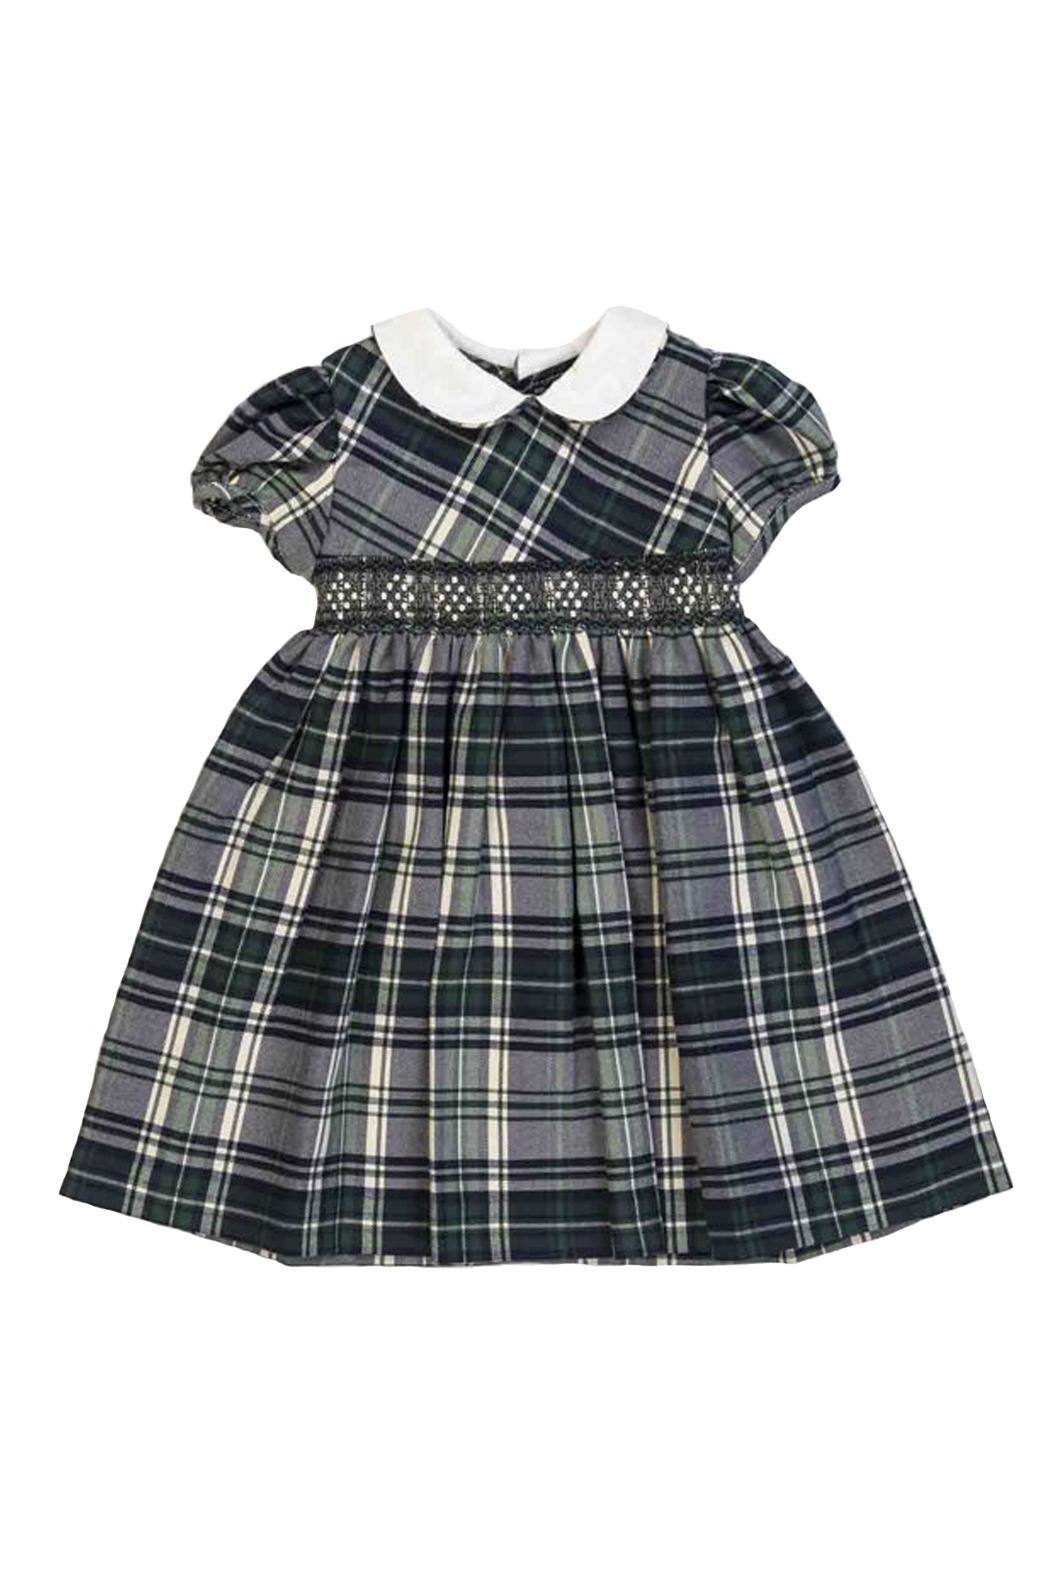 Malvi & Co. Green Tartan Dress. - Front Cropped Image